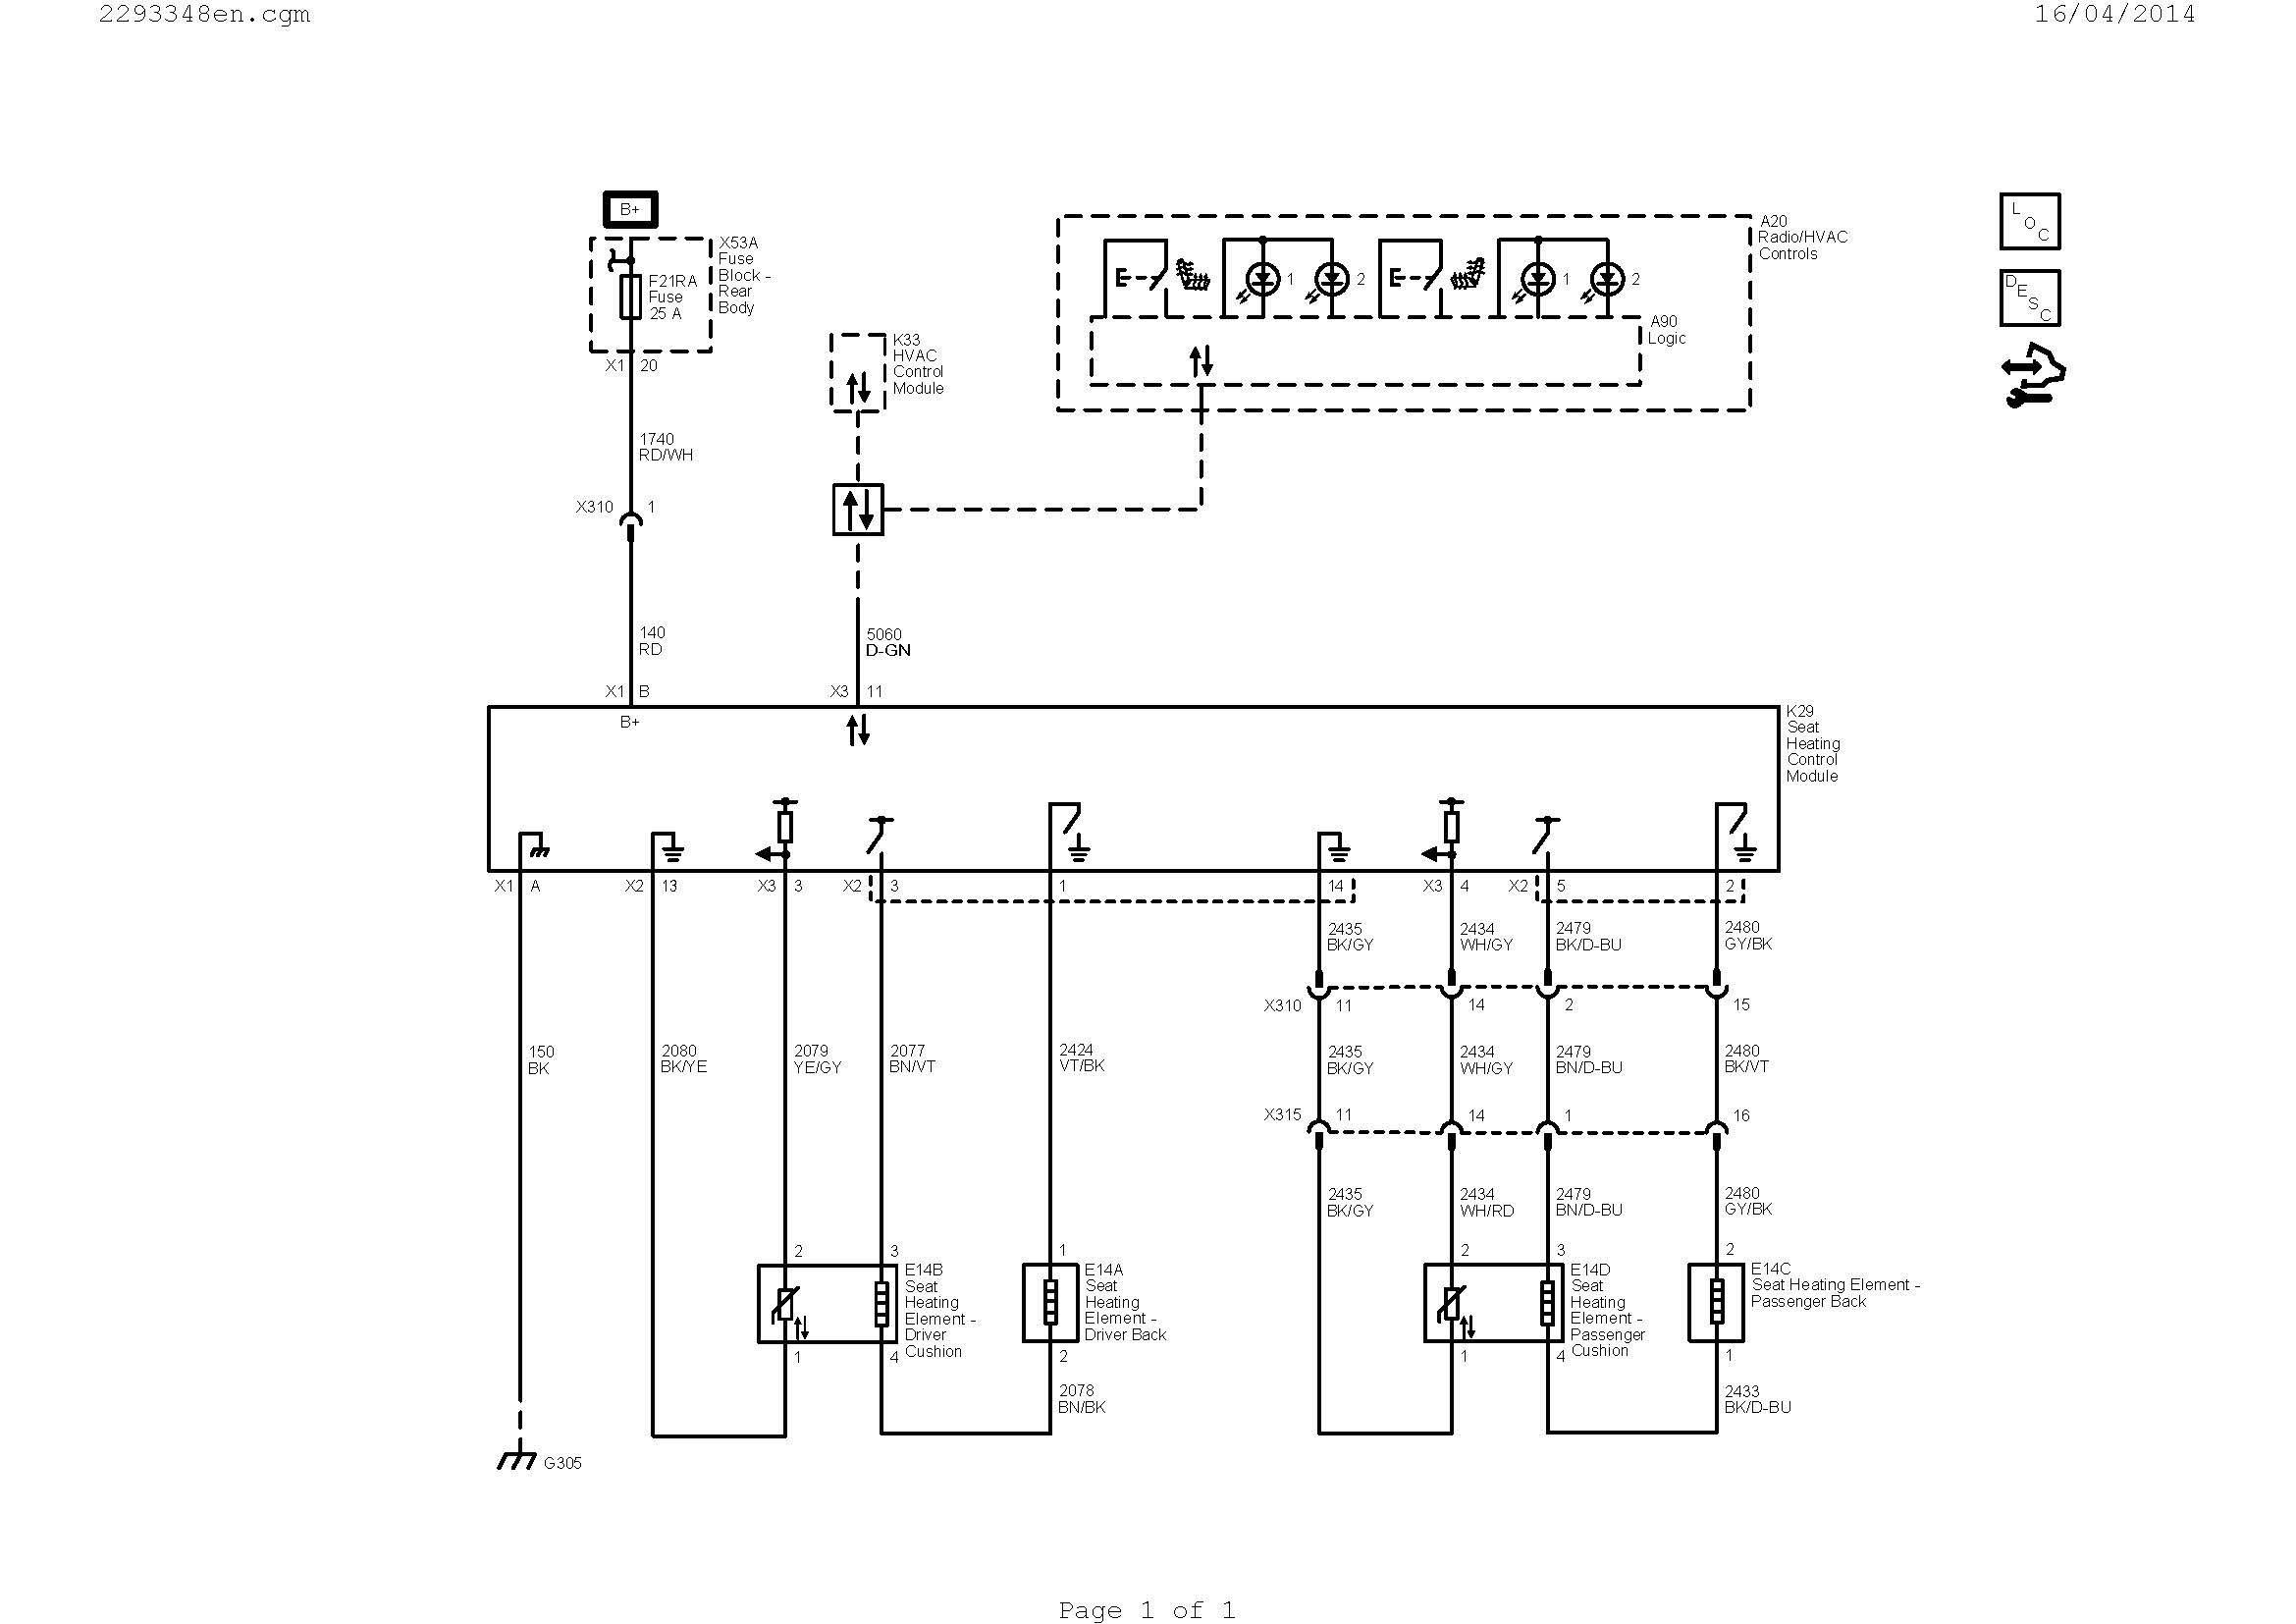 central air conditioner wiring diagram Download-ac thermostat wiring diagram Collection Wiring A Ac Thermostat Diagram New Wiring Diagram Ac Valid 5-k